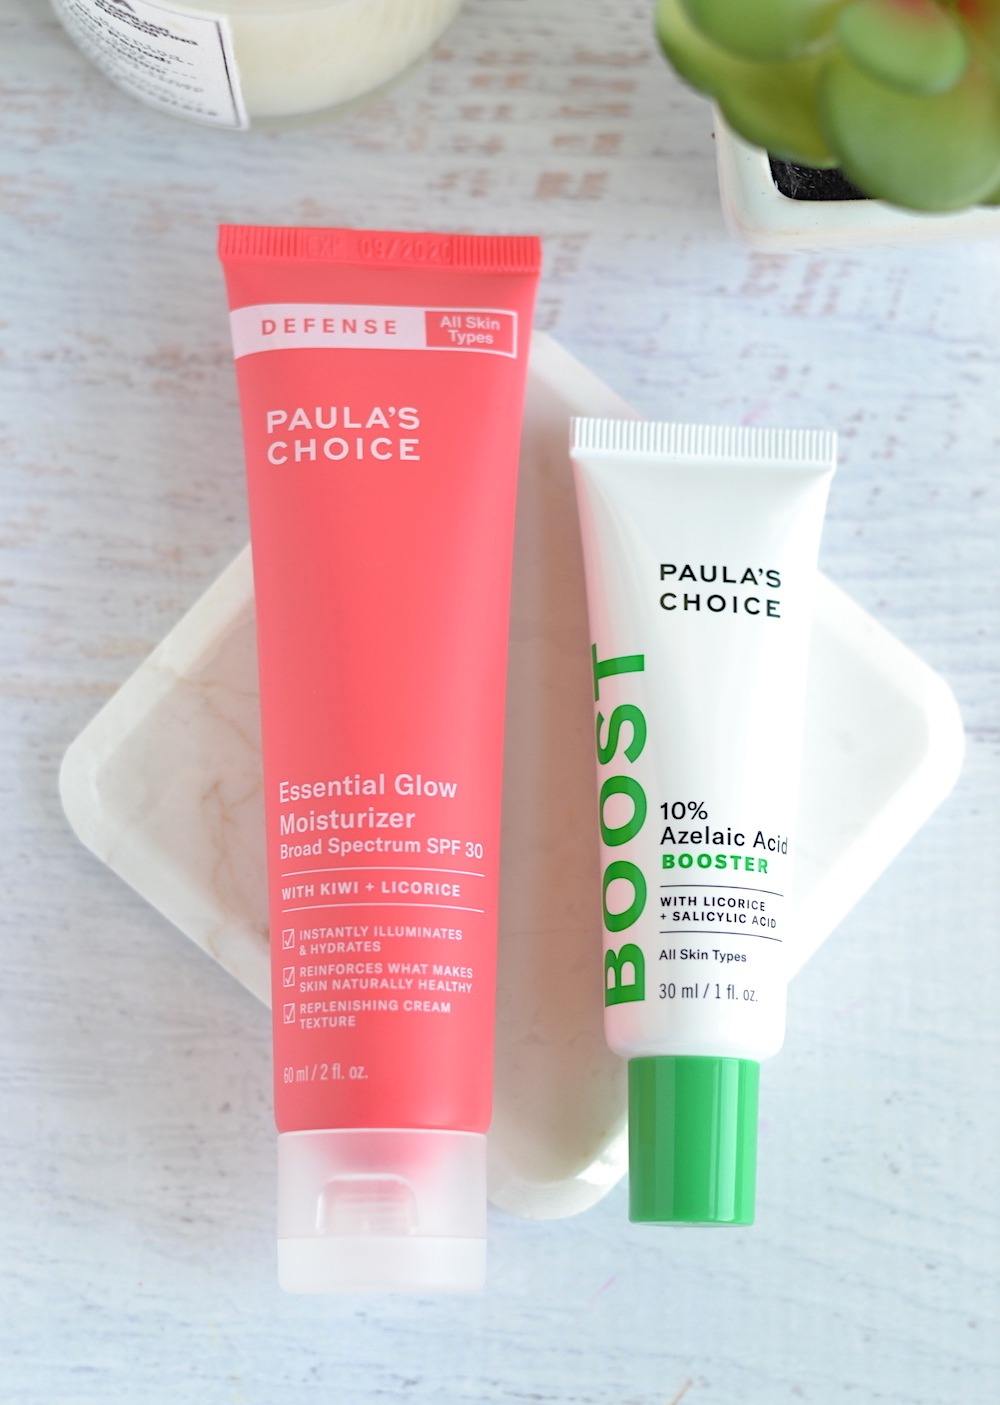 Paula's Choice 10% Azelaic Acid Booster and Essential Glow Moisturizer SPF 30